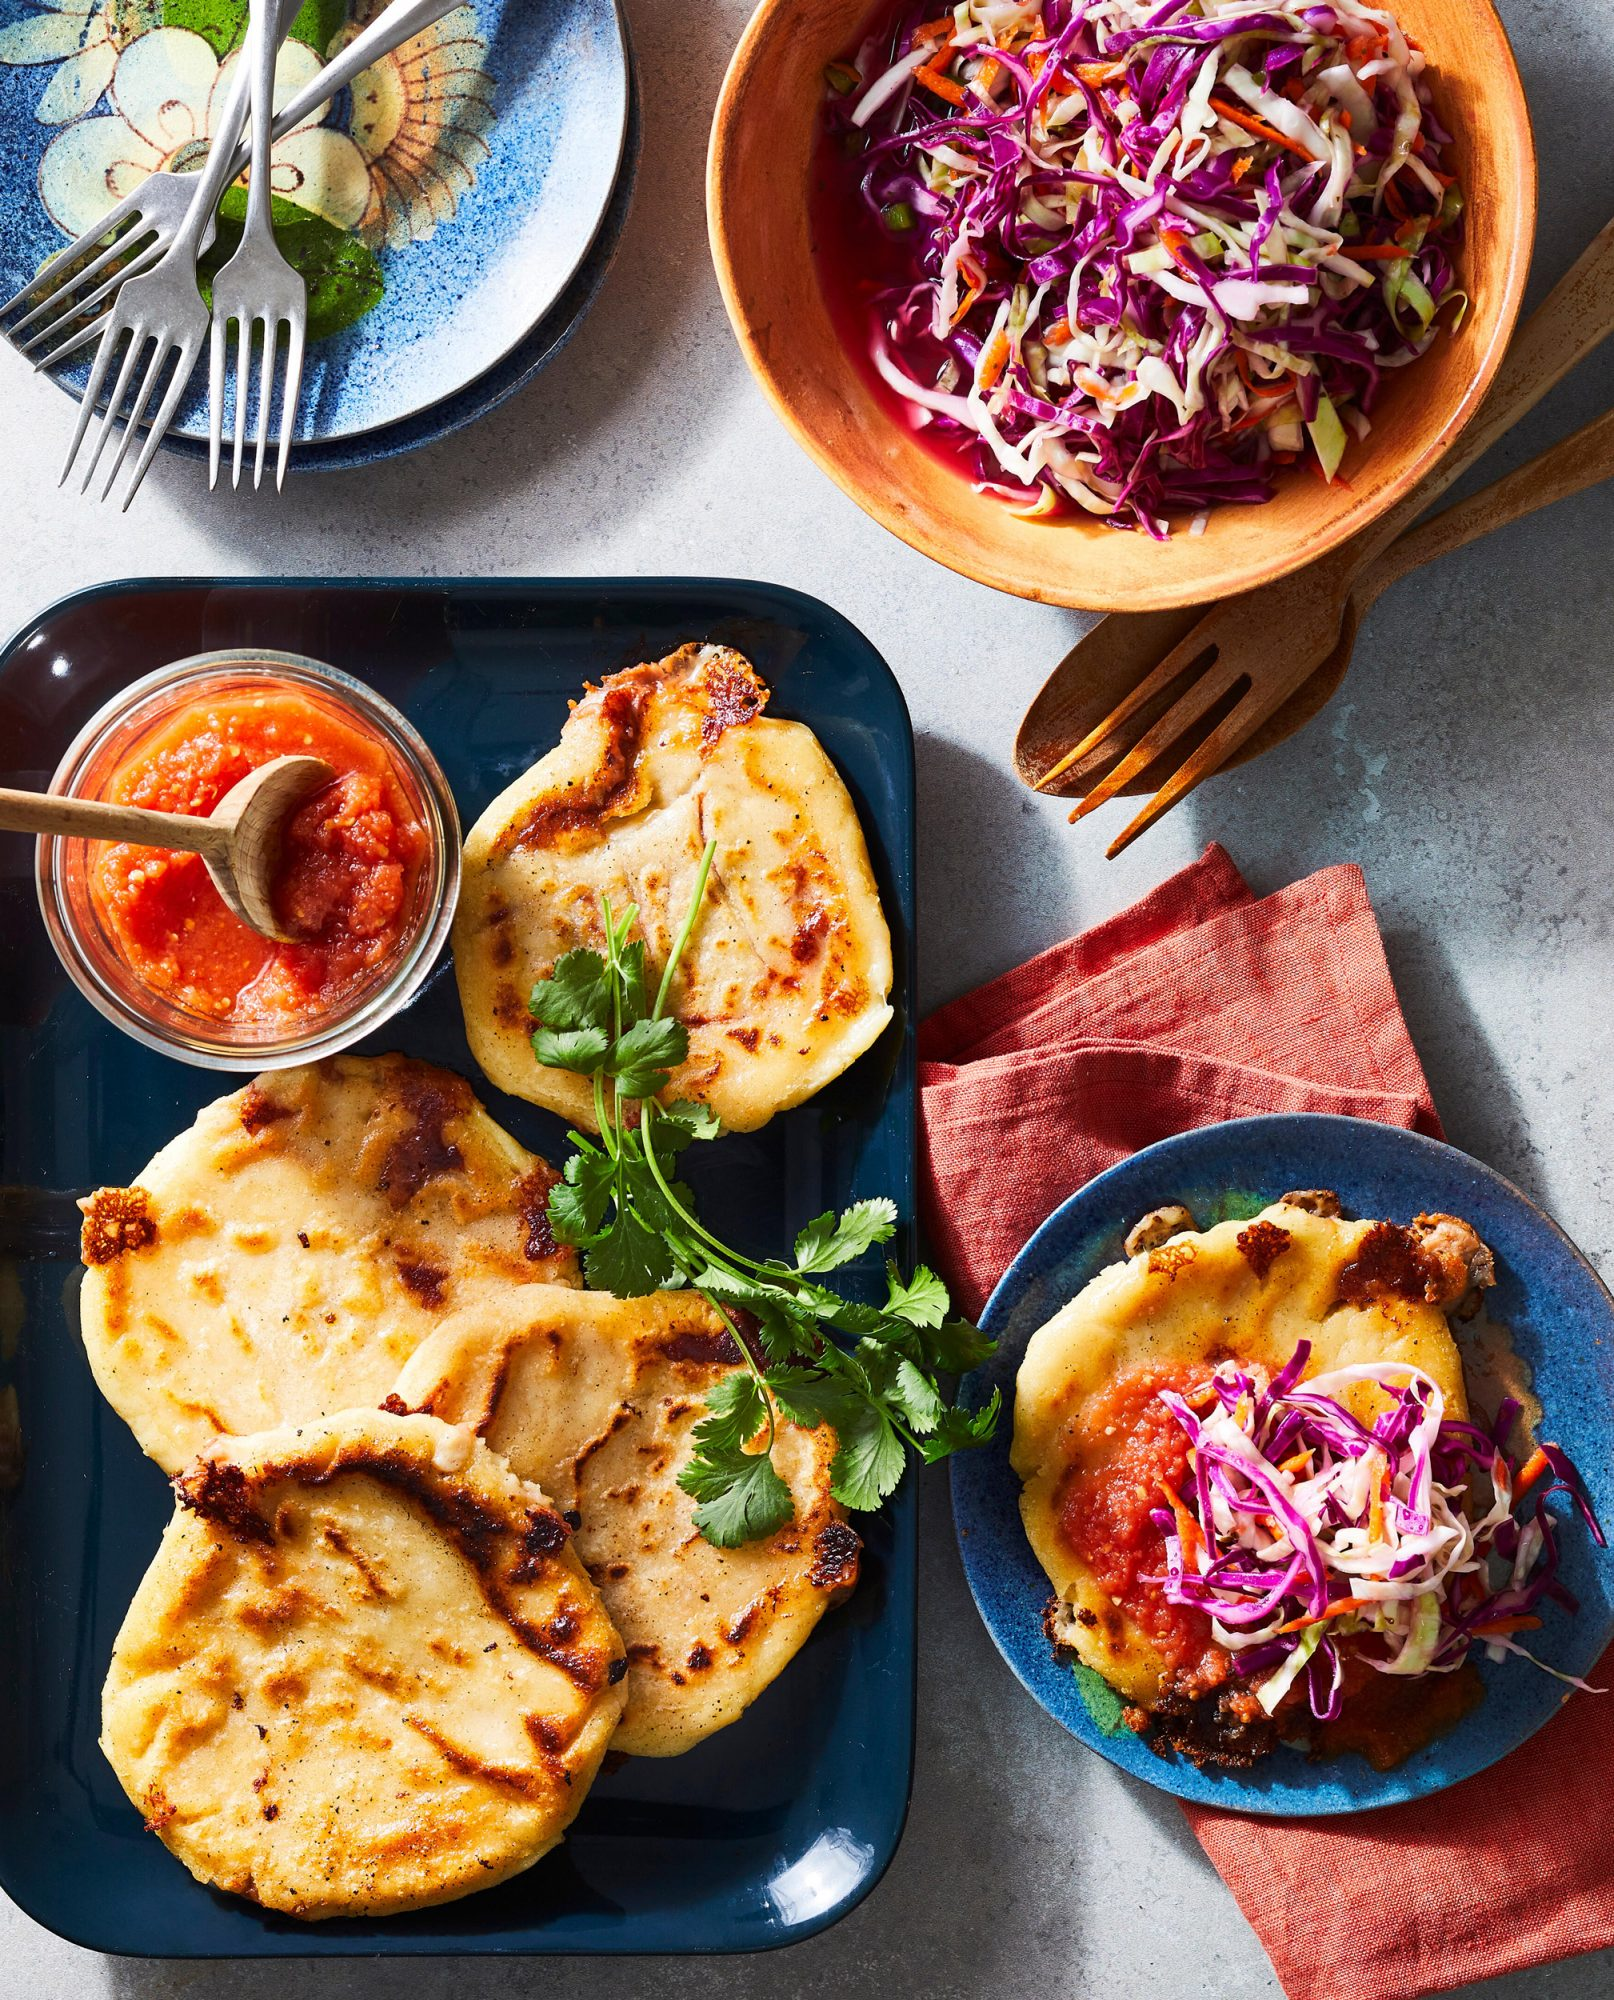 Bean and Cheese Pupuas With Red Salsa and Curtido